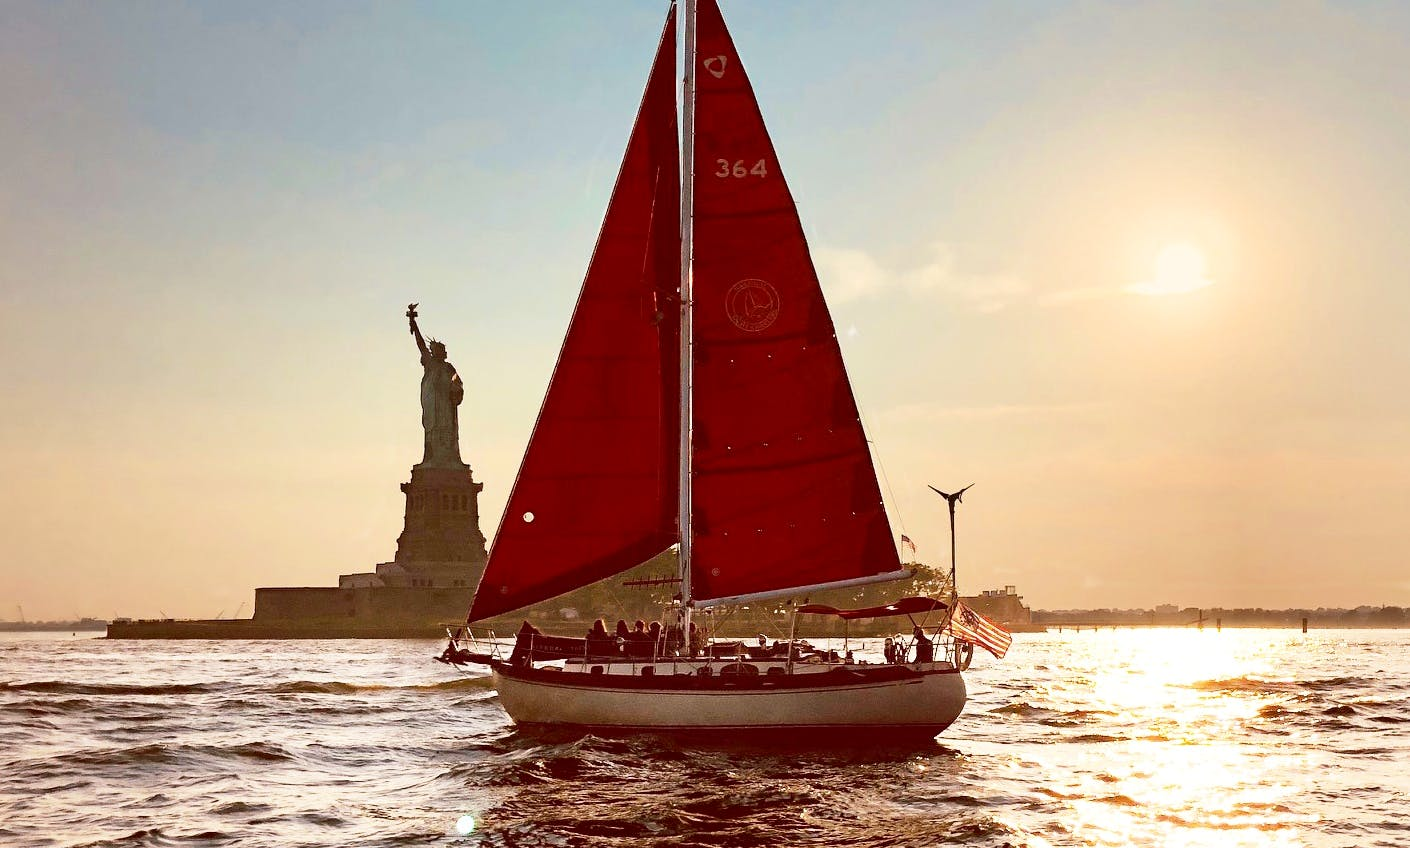 Sail NYC's skyline aboard the Genesis, a beautiful classic sailboat!